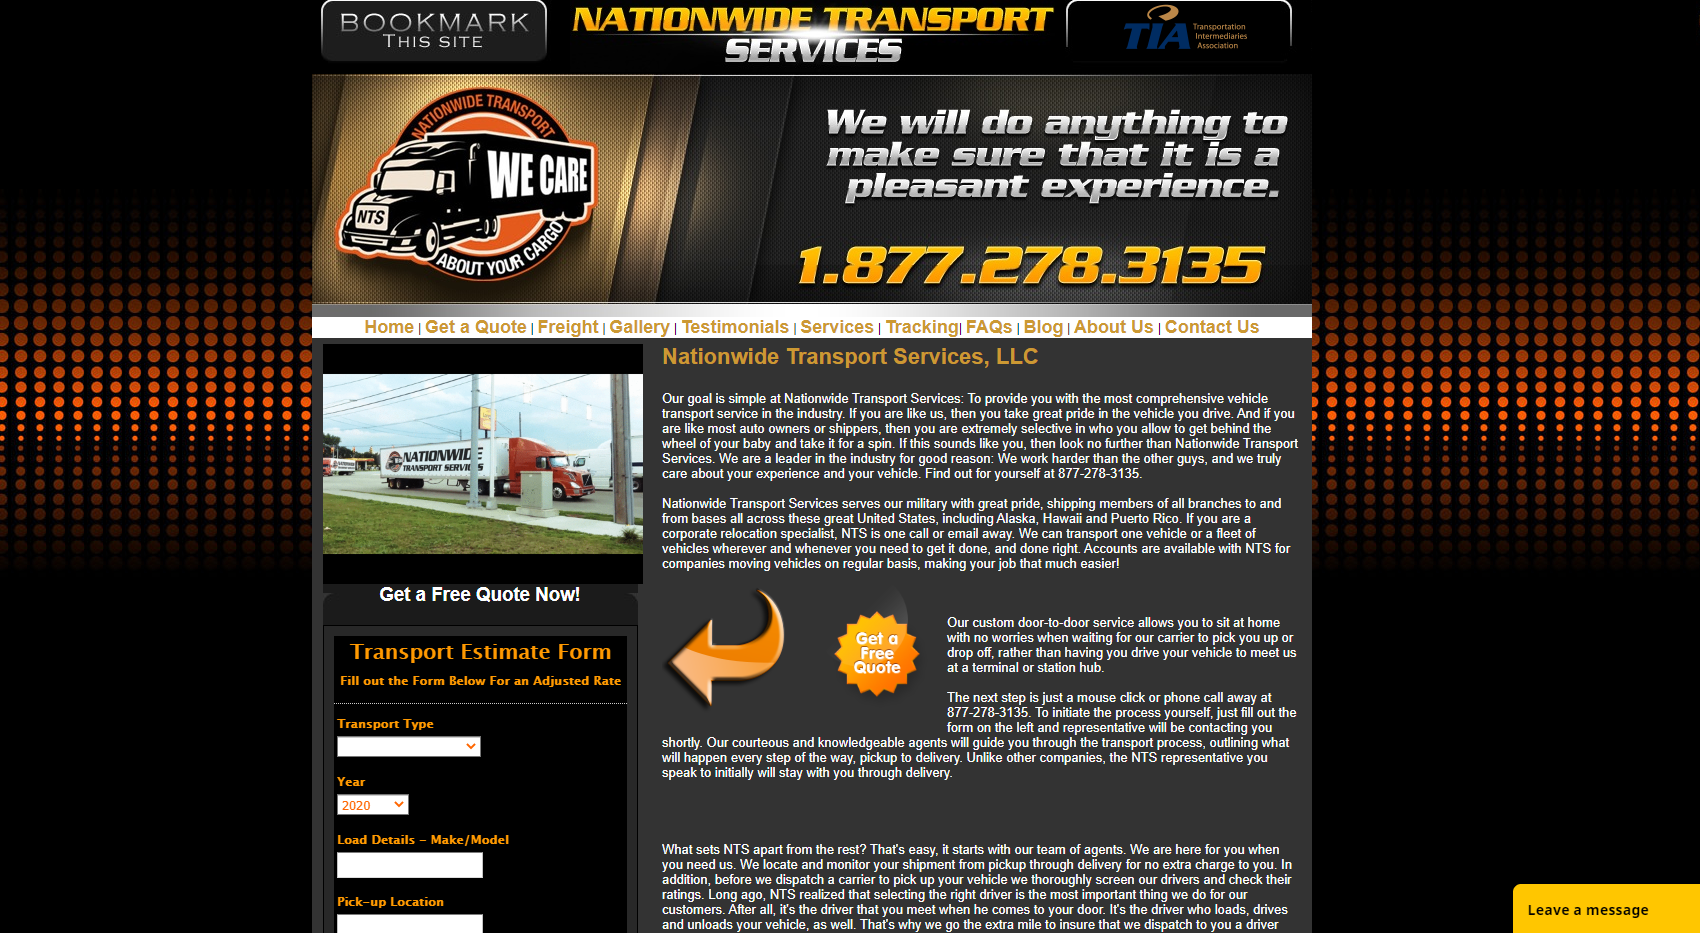 Nationwide Transport Services, LLC